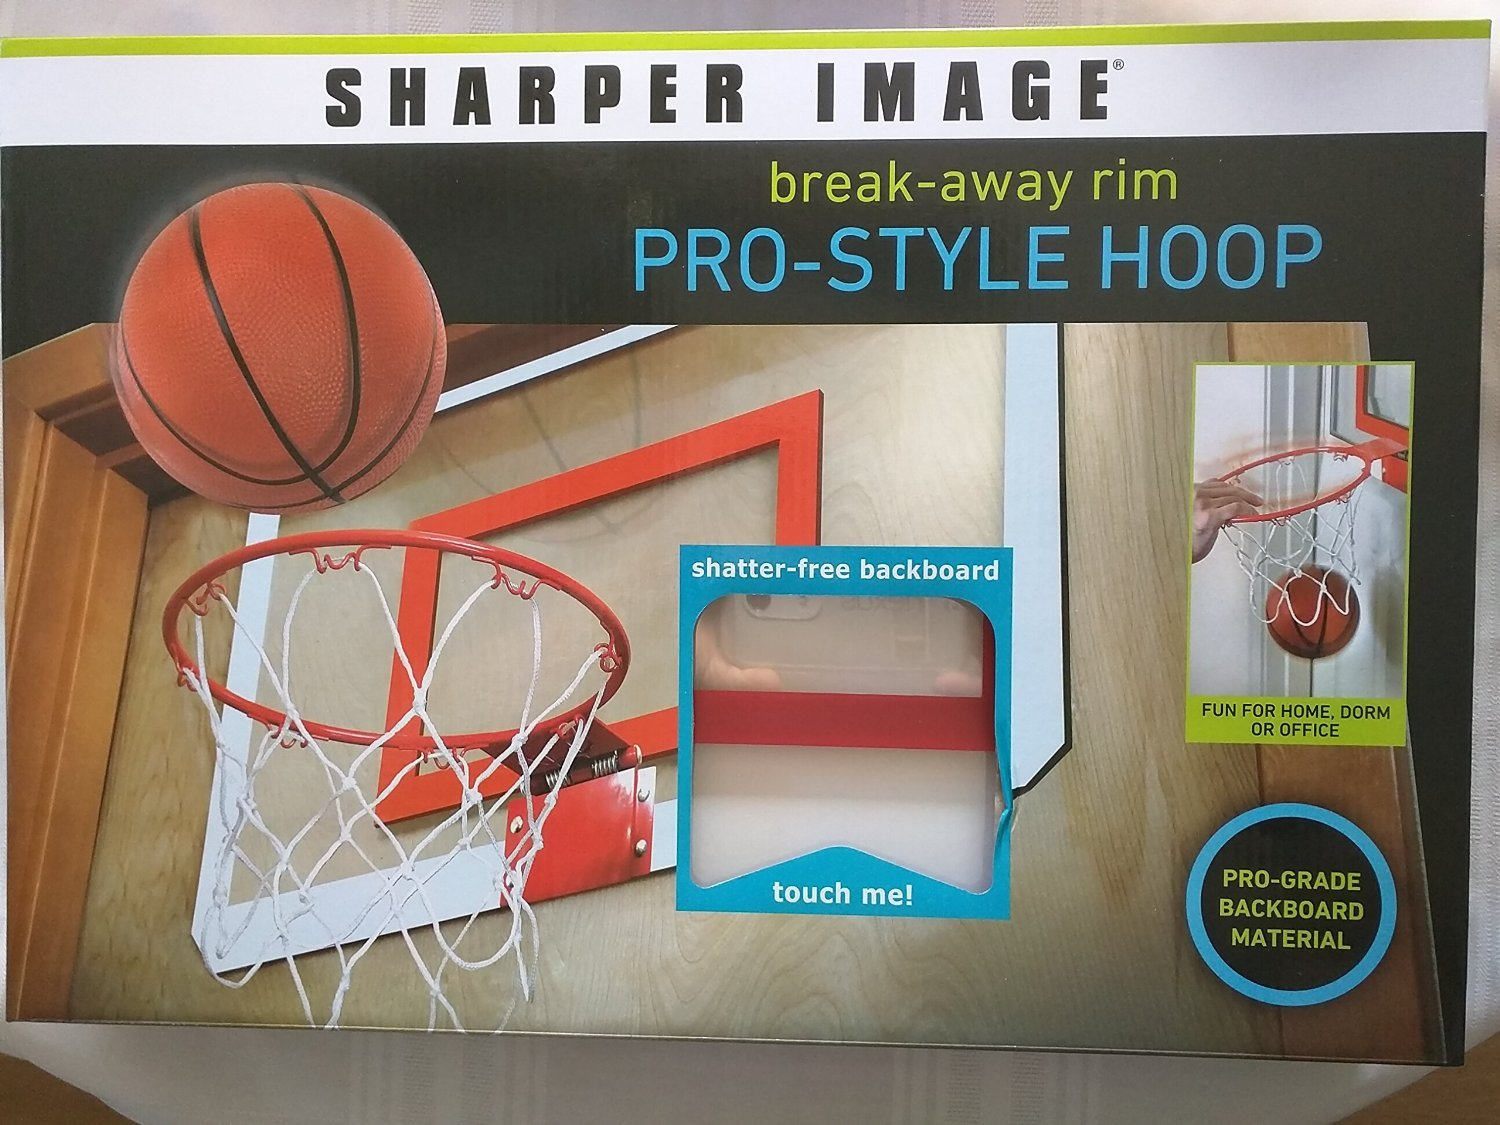 Sharper Image Break-Away Rim Pro-Style Hoop Basketball Game